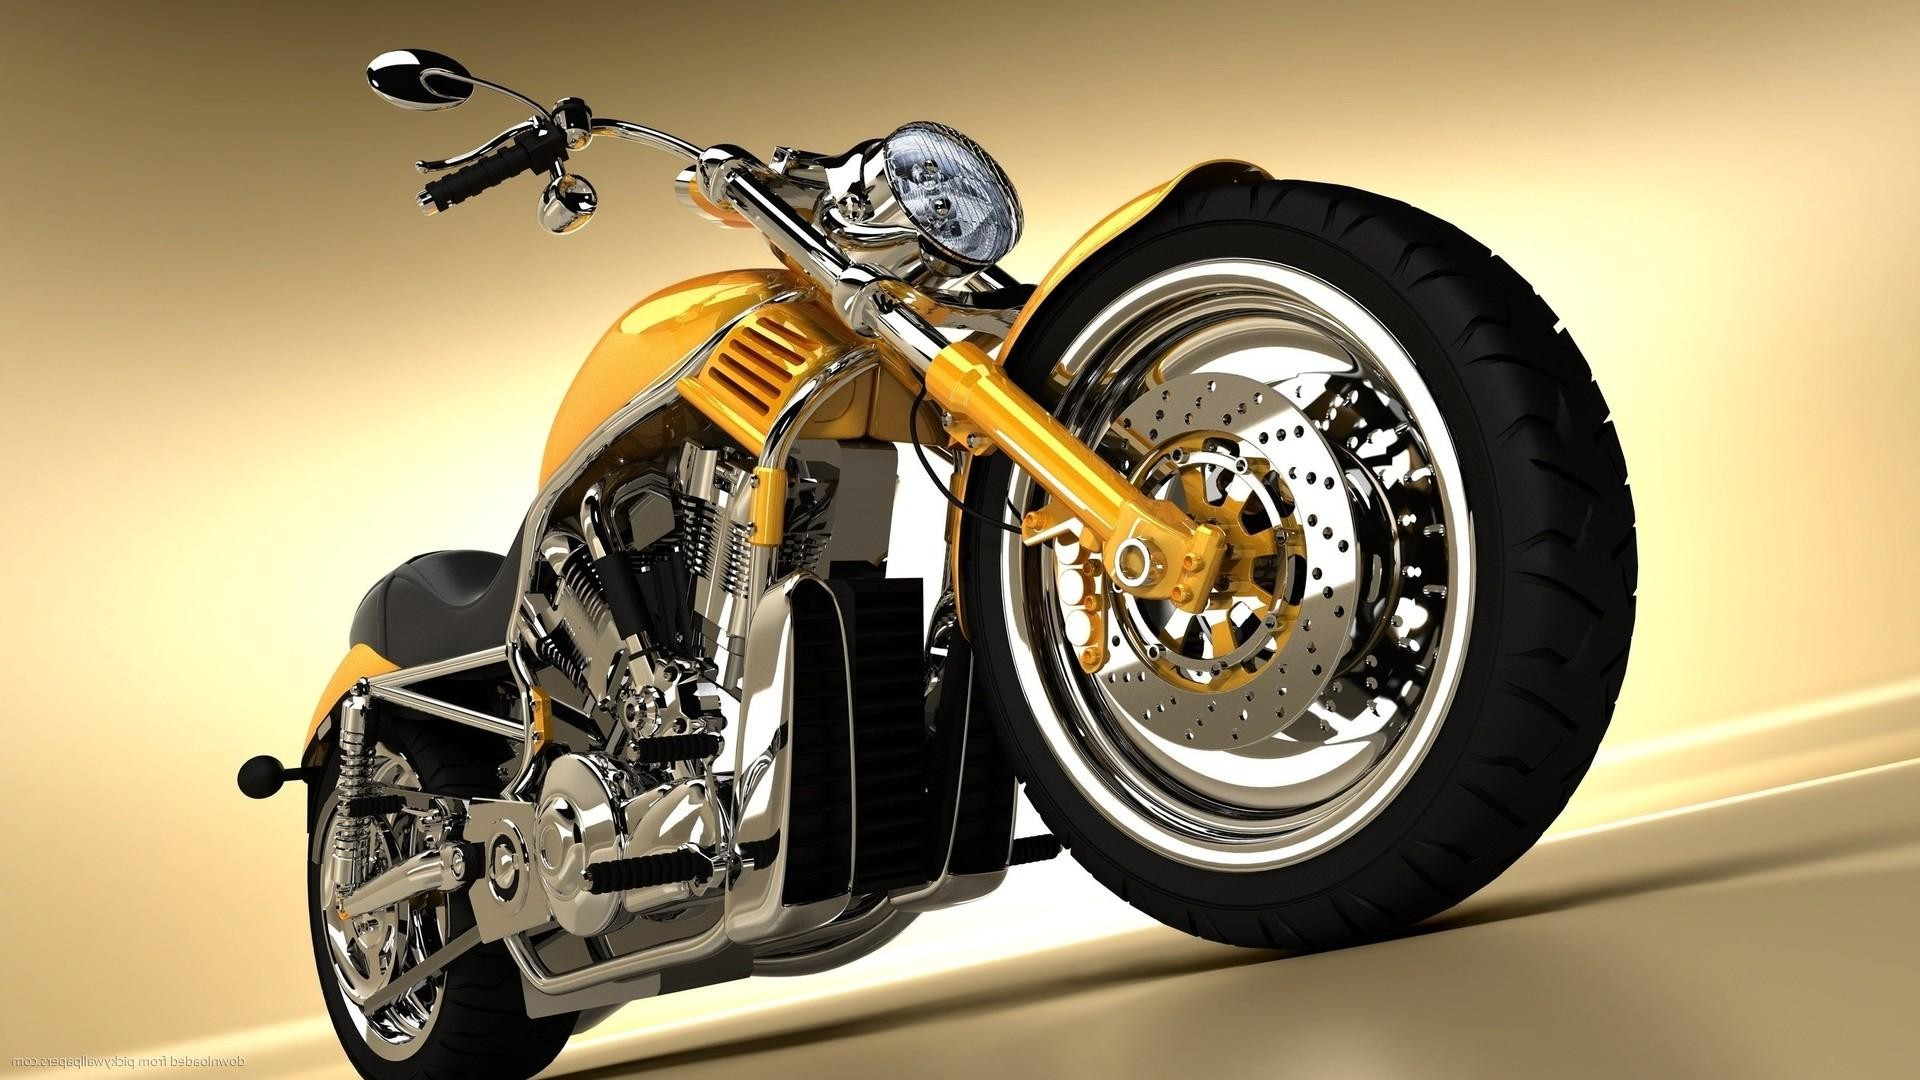 Harley Davidson Motorcycles: 50 Free Harley Davidson Wallpapers Hd For PC